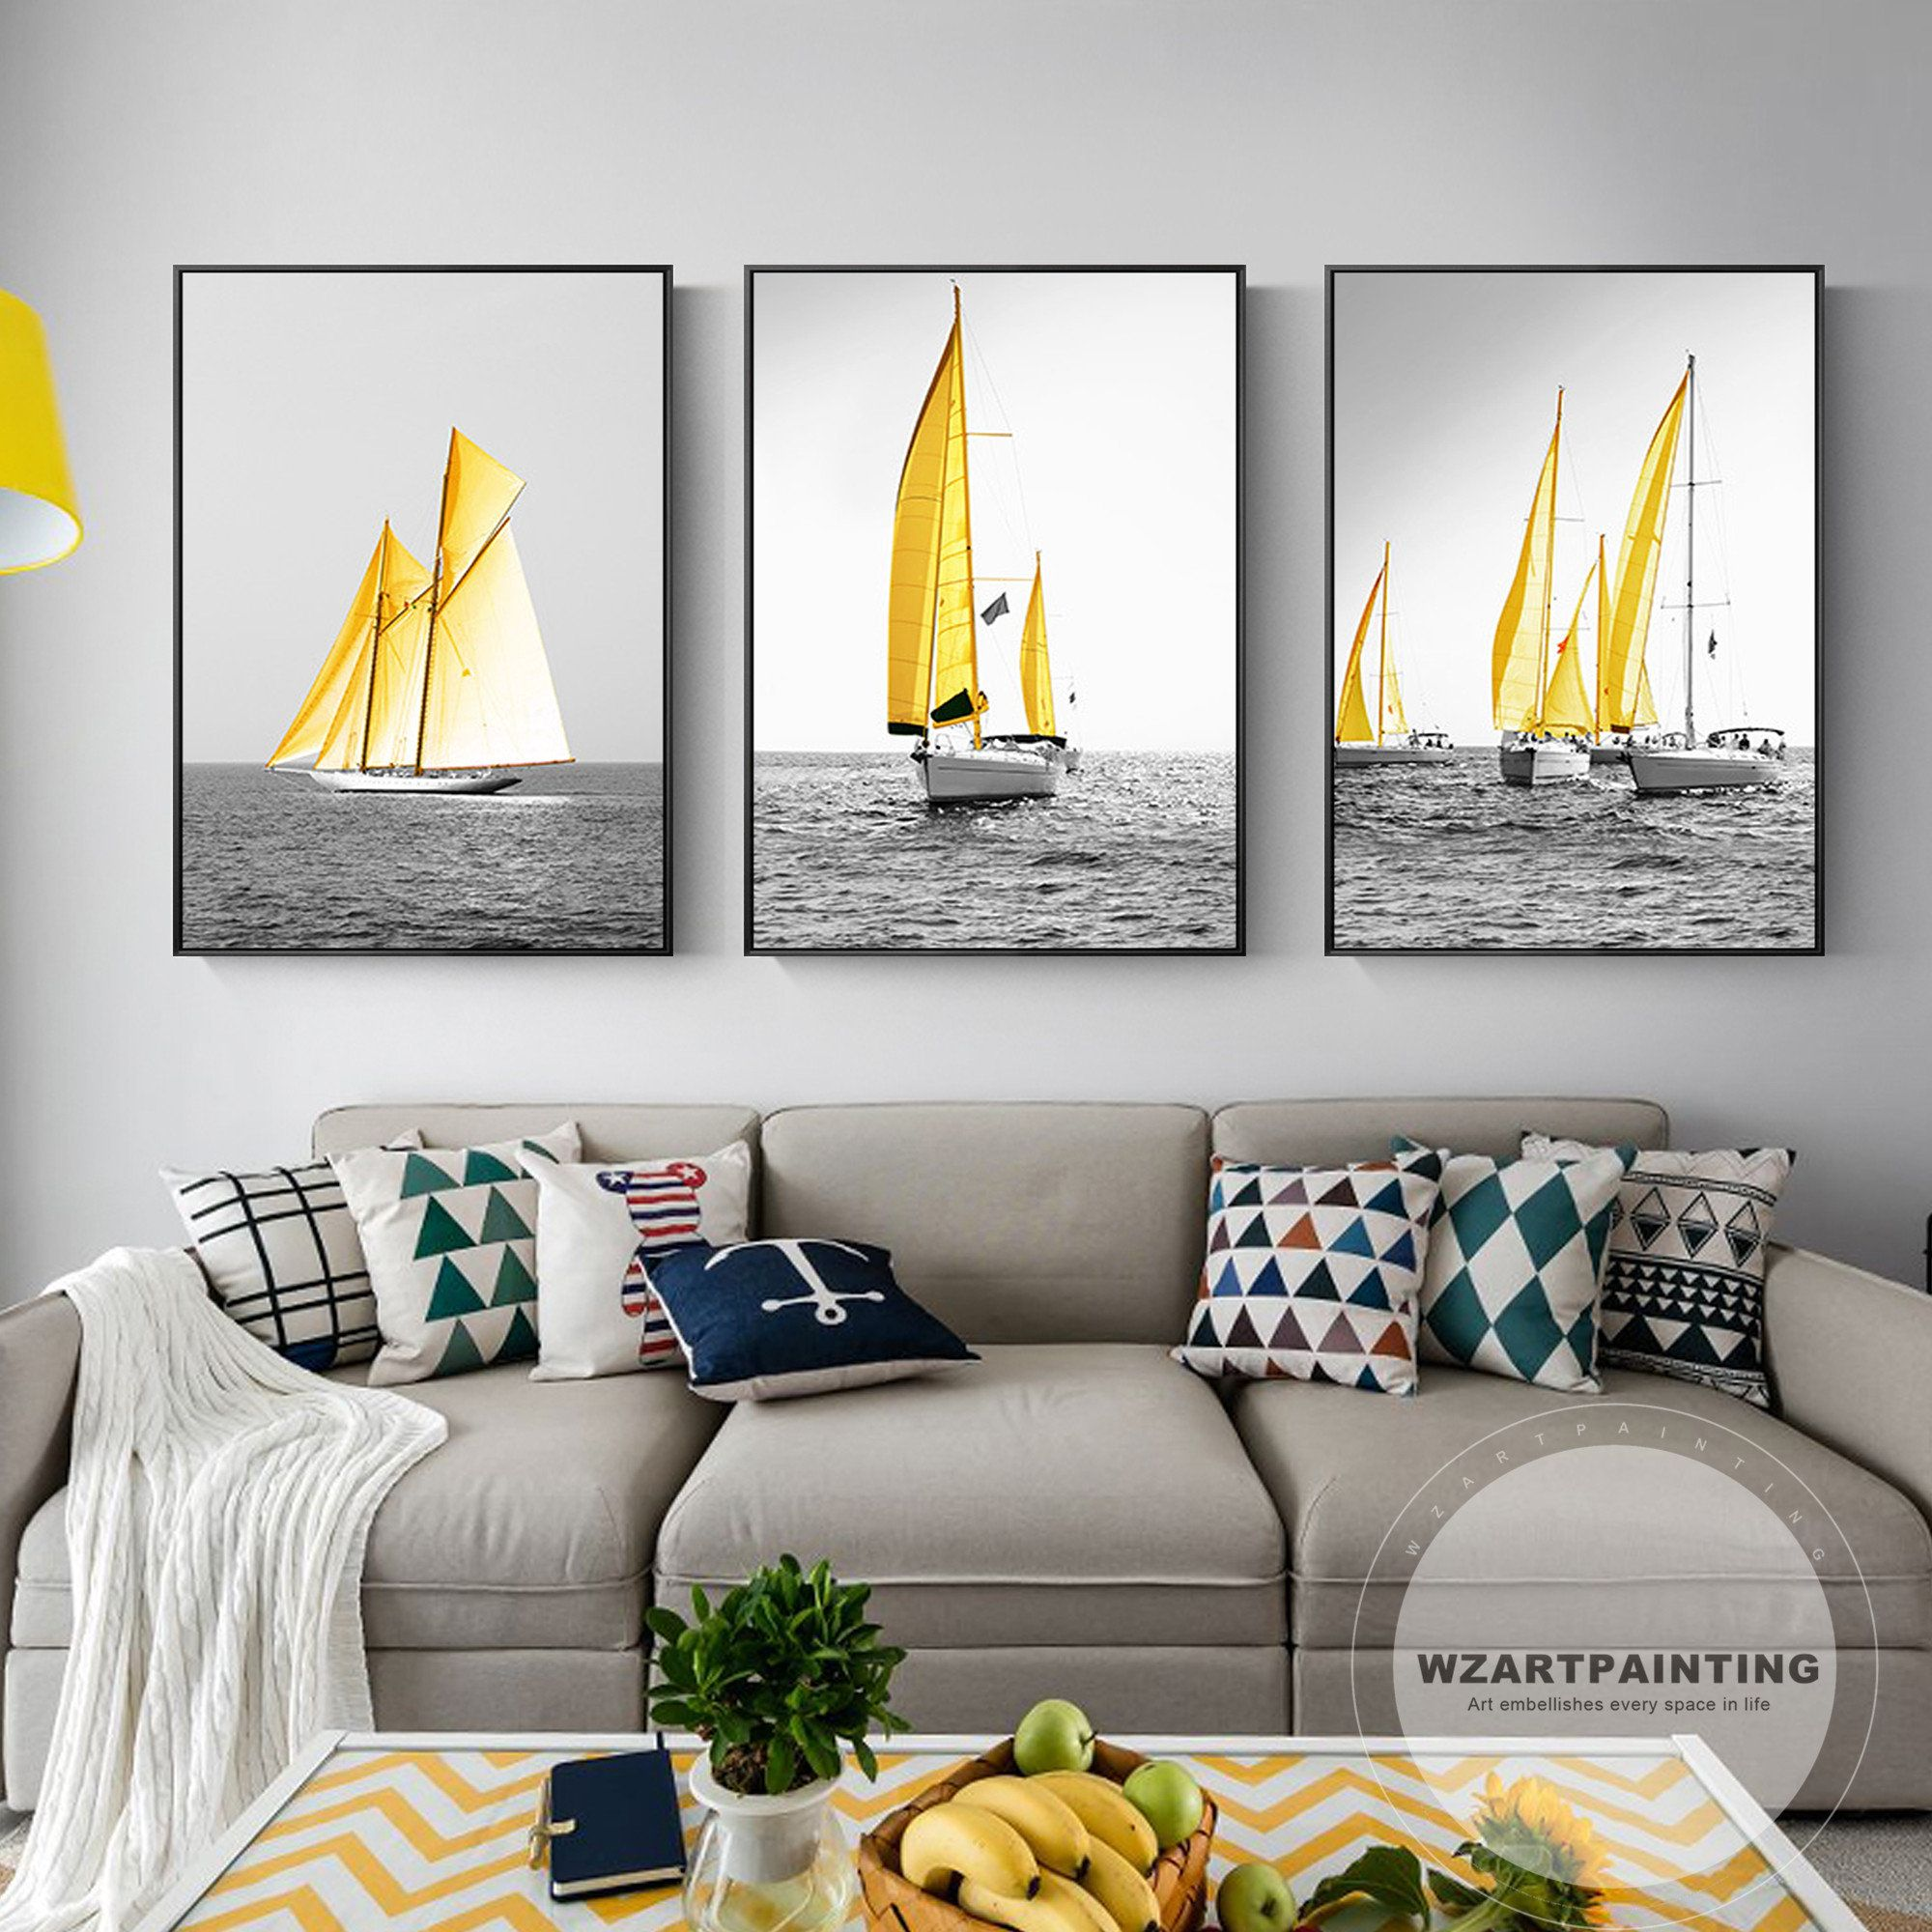 3 Piece Modern Yellow Sailboat Ocean Print Painting On Canvas Boat Friend Gifts Wall Art Pictures Quadro Pi Frames On Wall Wall Printables Framed Wall Art Sets